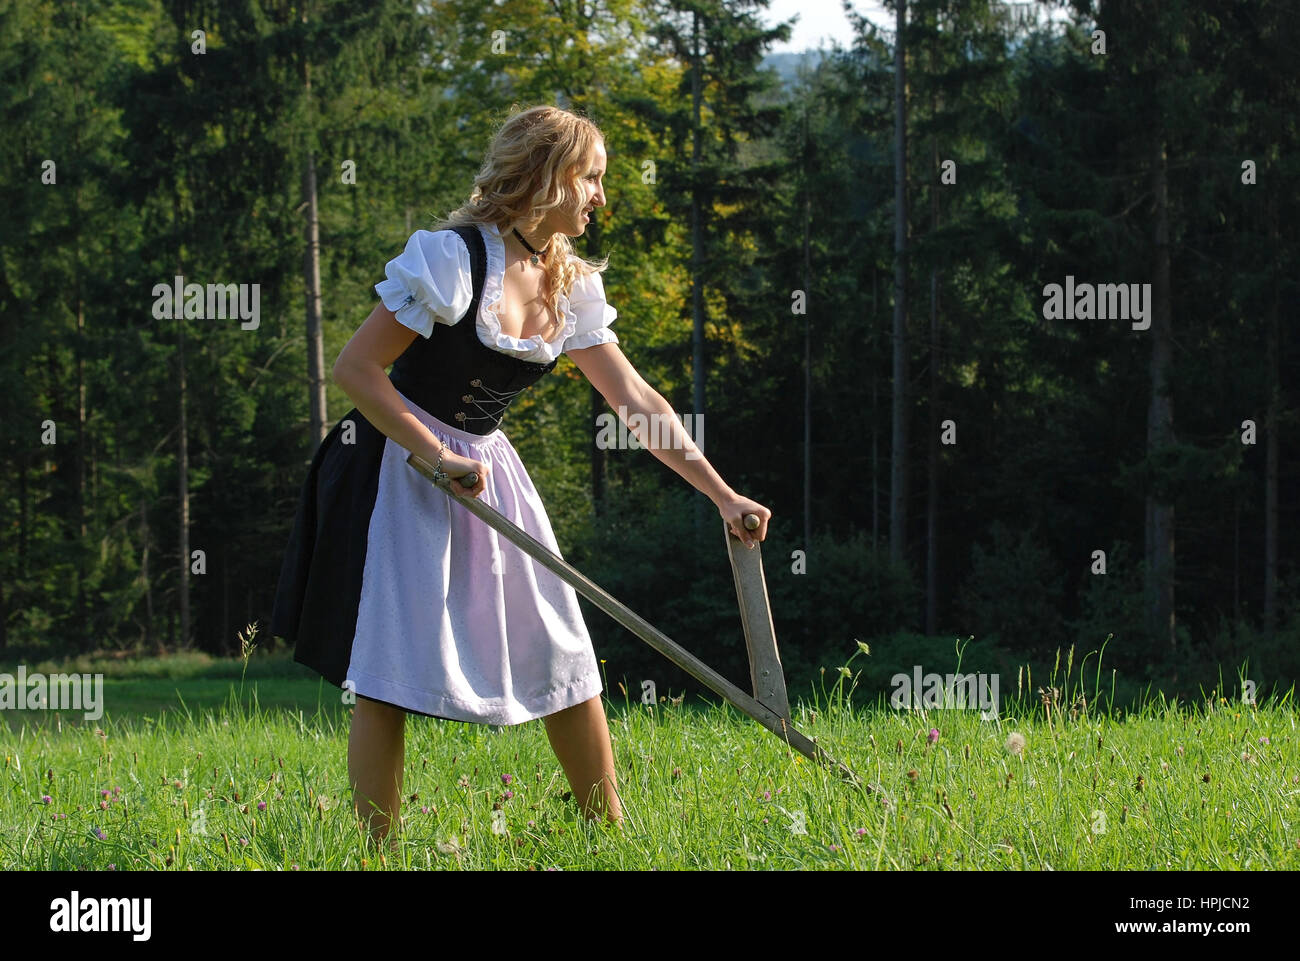 Model released , Junge Baeurin im Dirndl mit Sense - young woman in dirndl with scythe Stock Photo